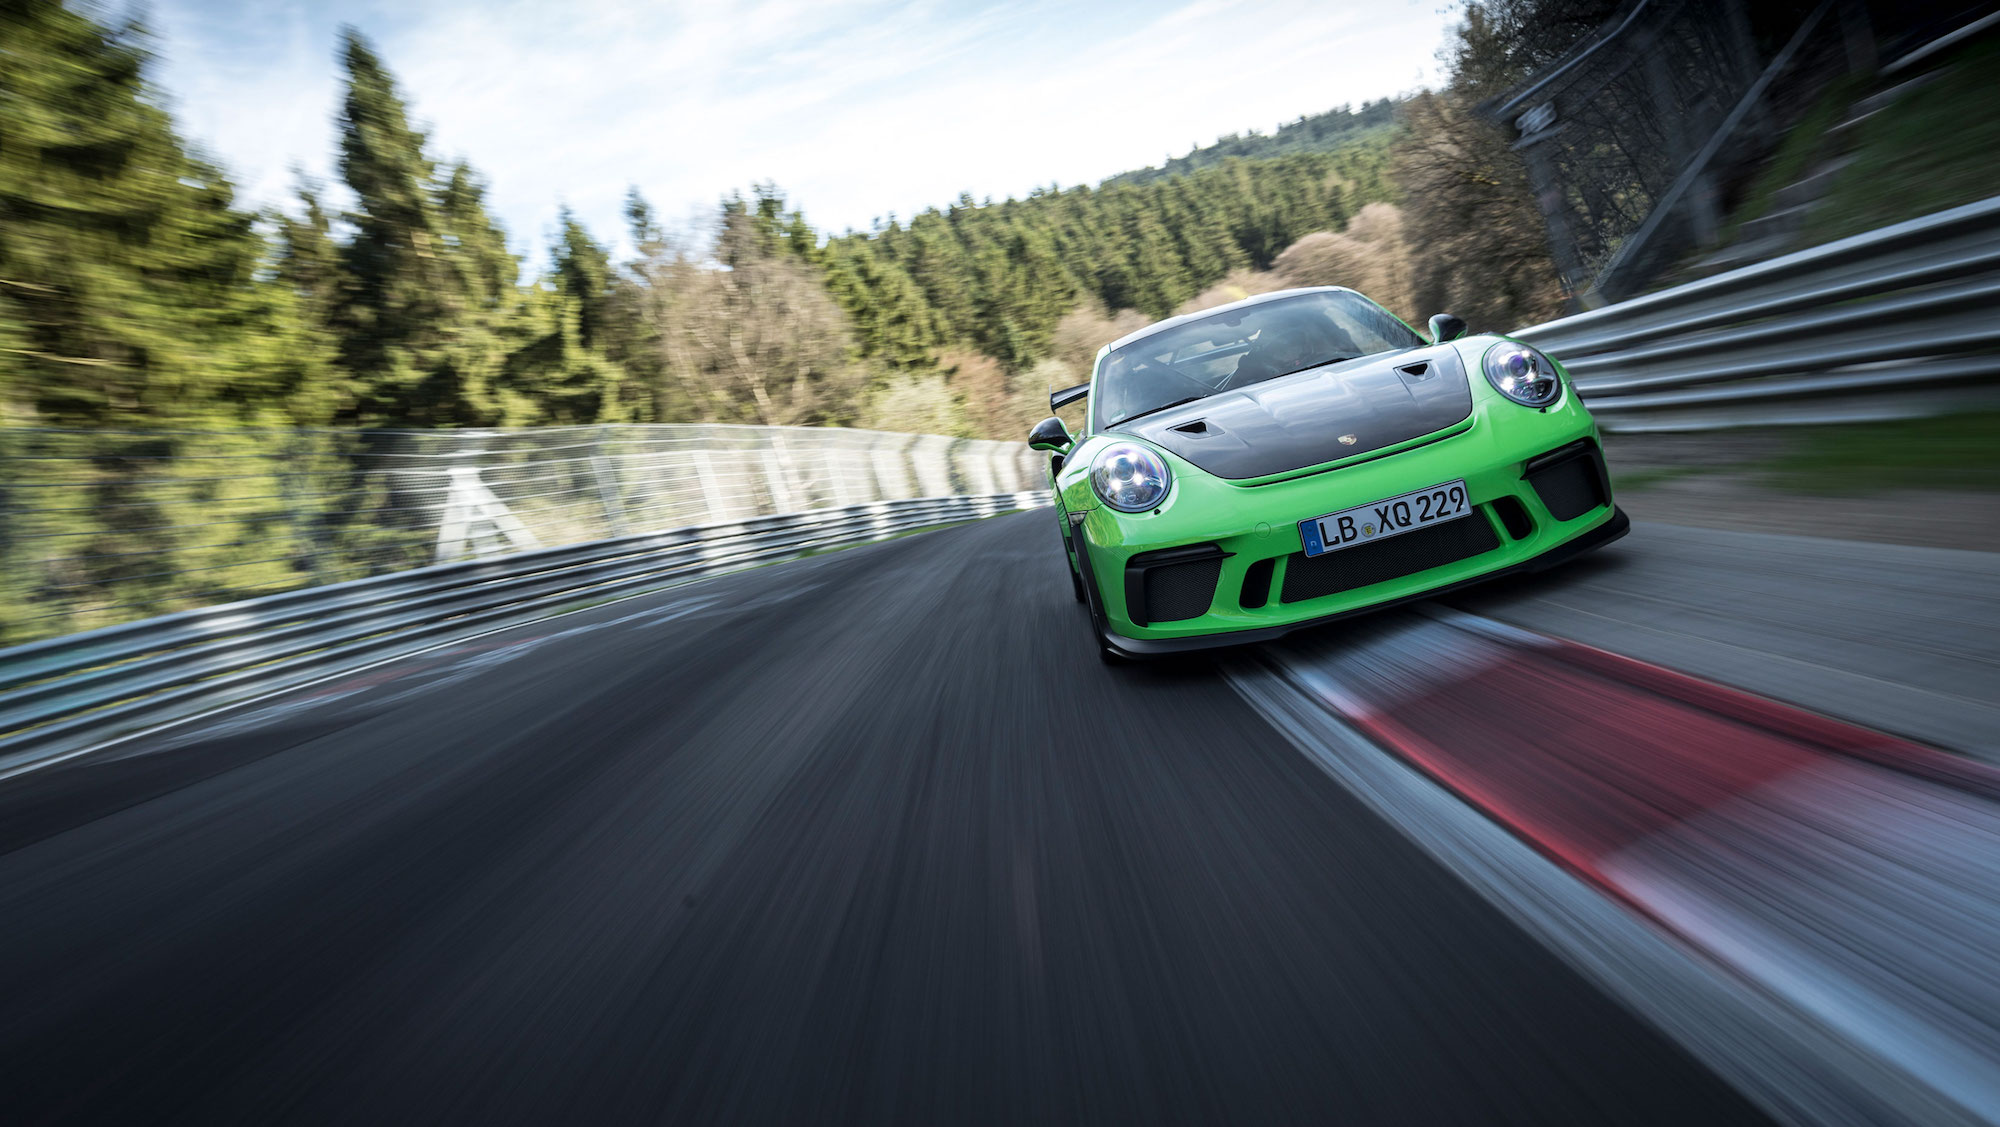 Porsche 911 GT3 RS Laps Nurburgring Faster Than 918 Spyder